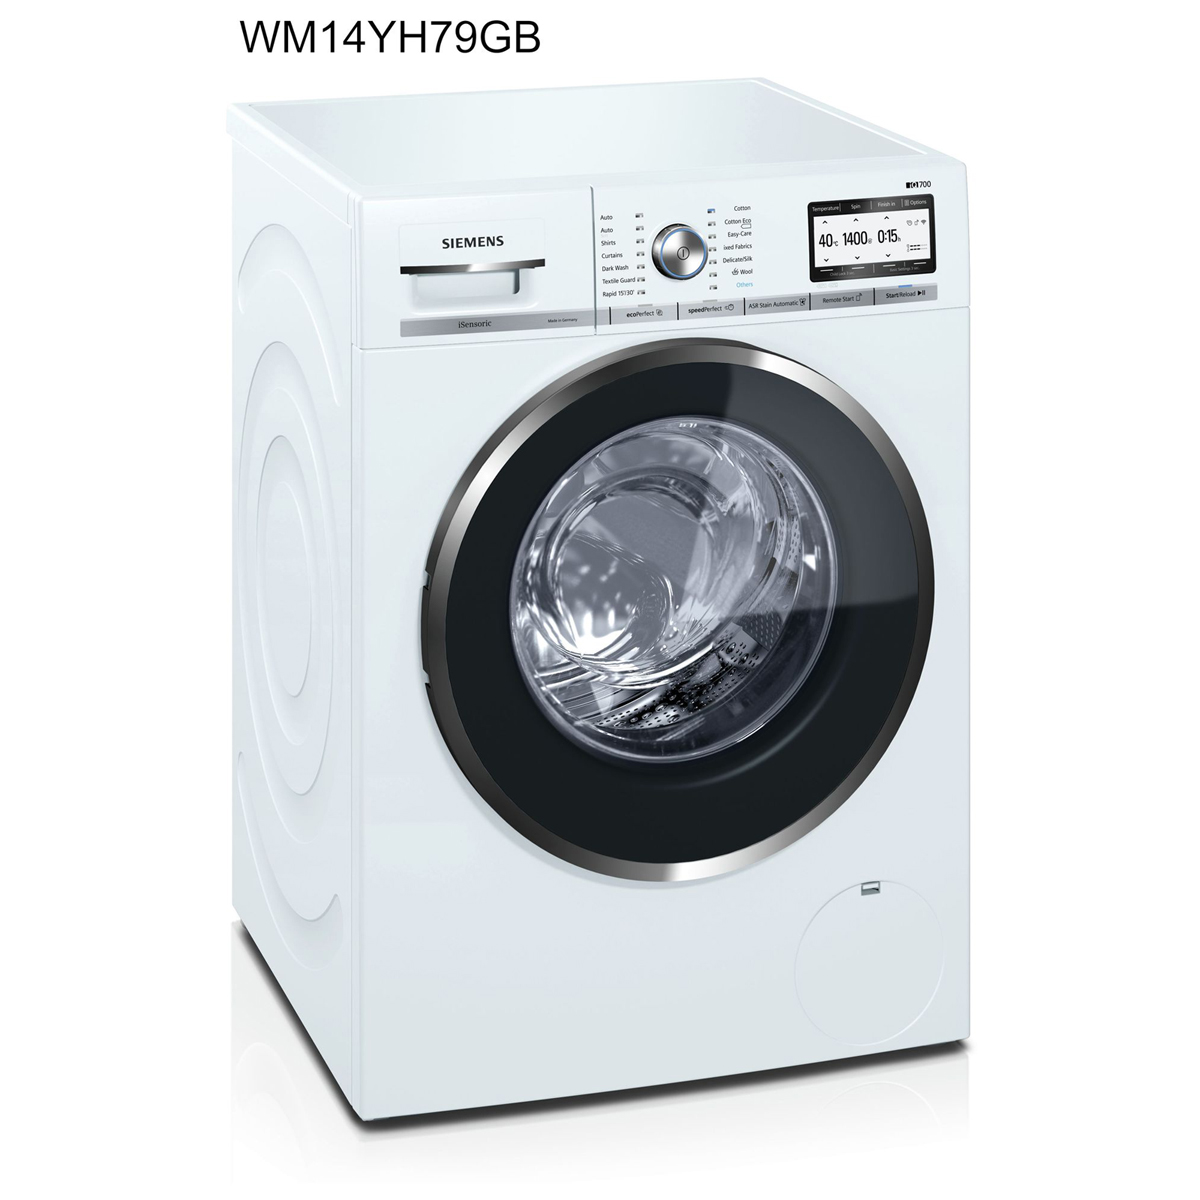 Siemens iQ700 WM14YH79GB Washing Machine Freestanding 9 kg A+++ White